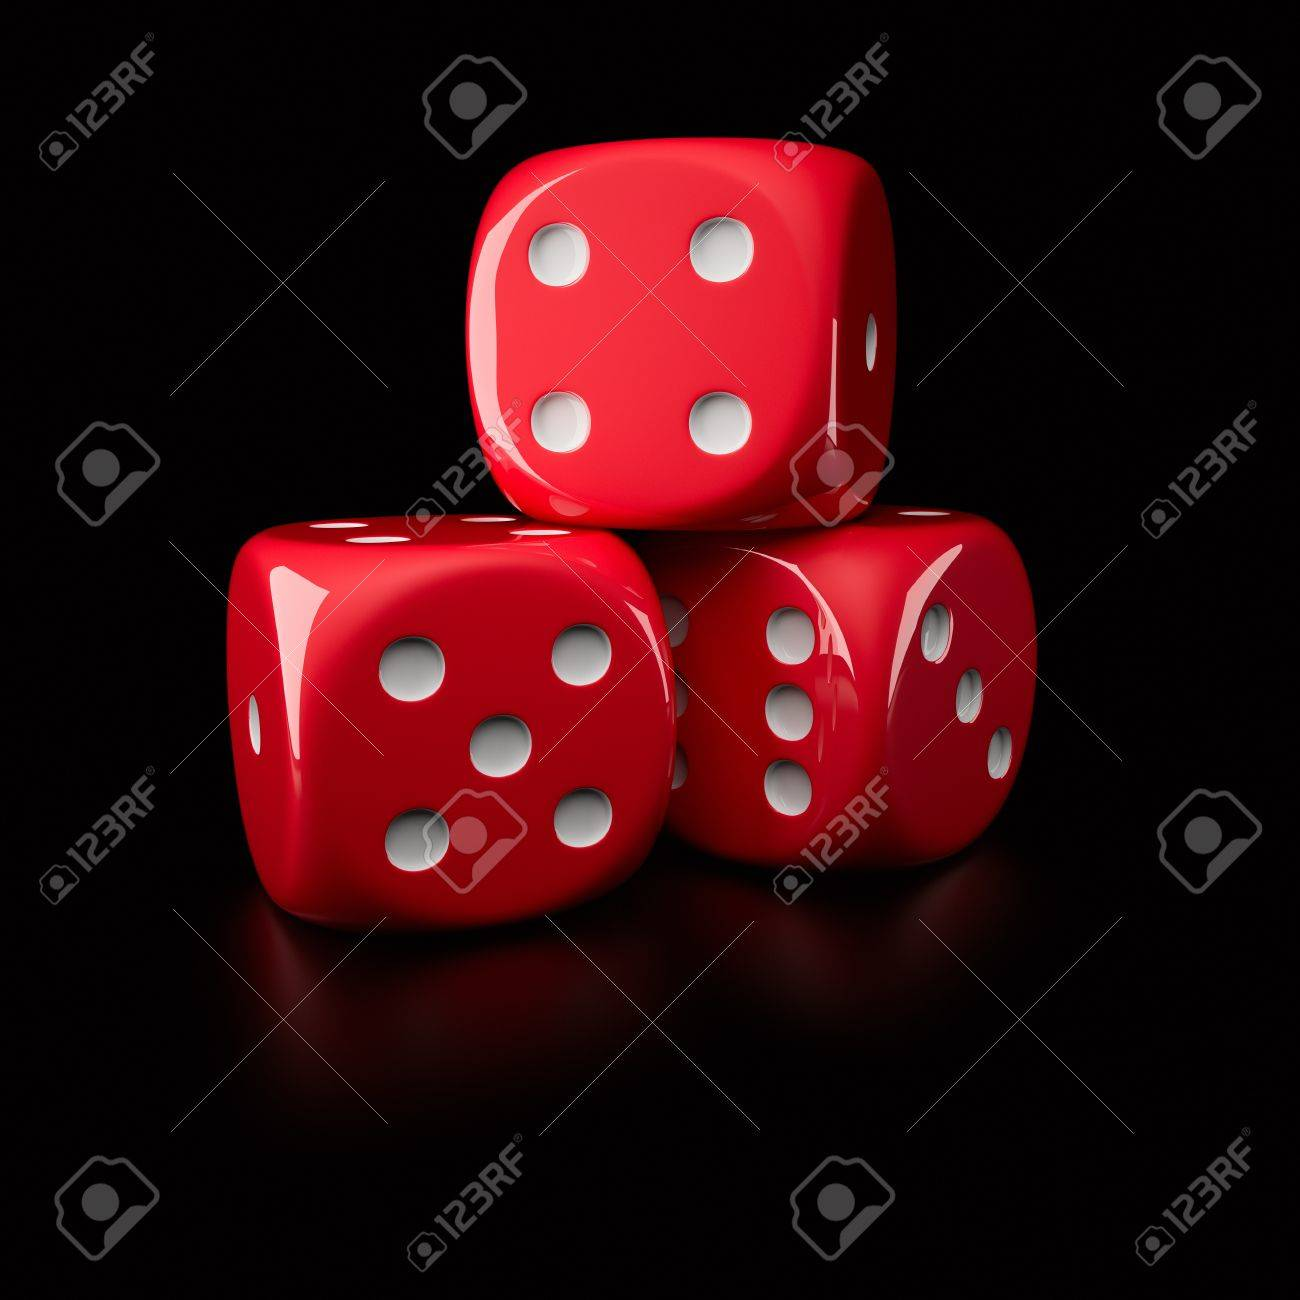 Three red dice showing different sides (on a right-handed, 6-sided die with pips) Stock Photo - 16451314